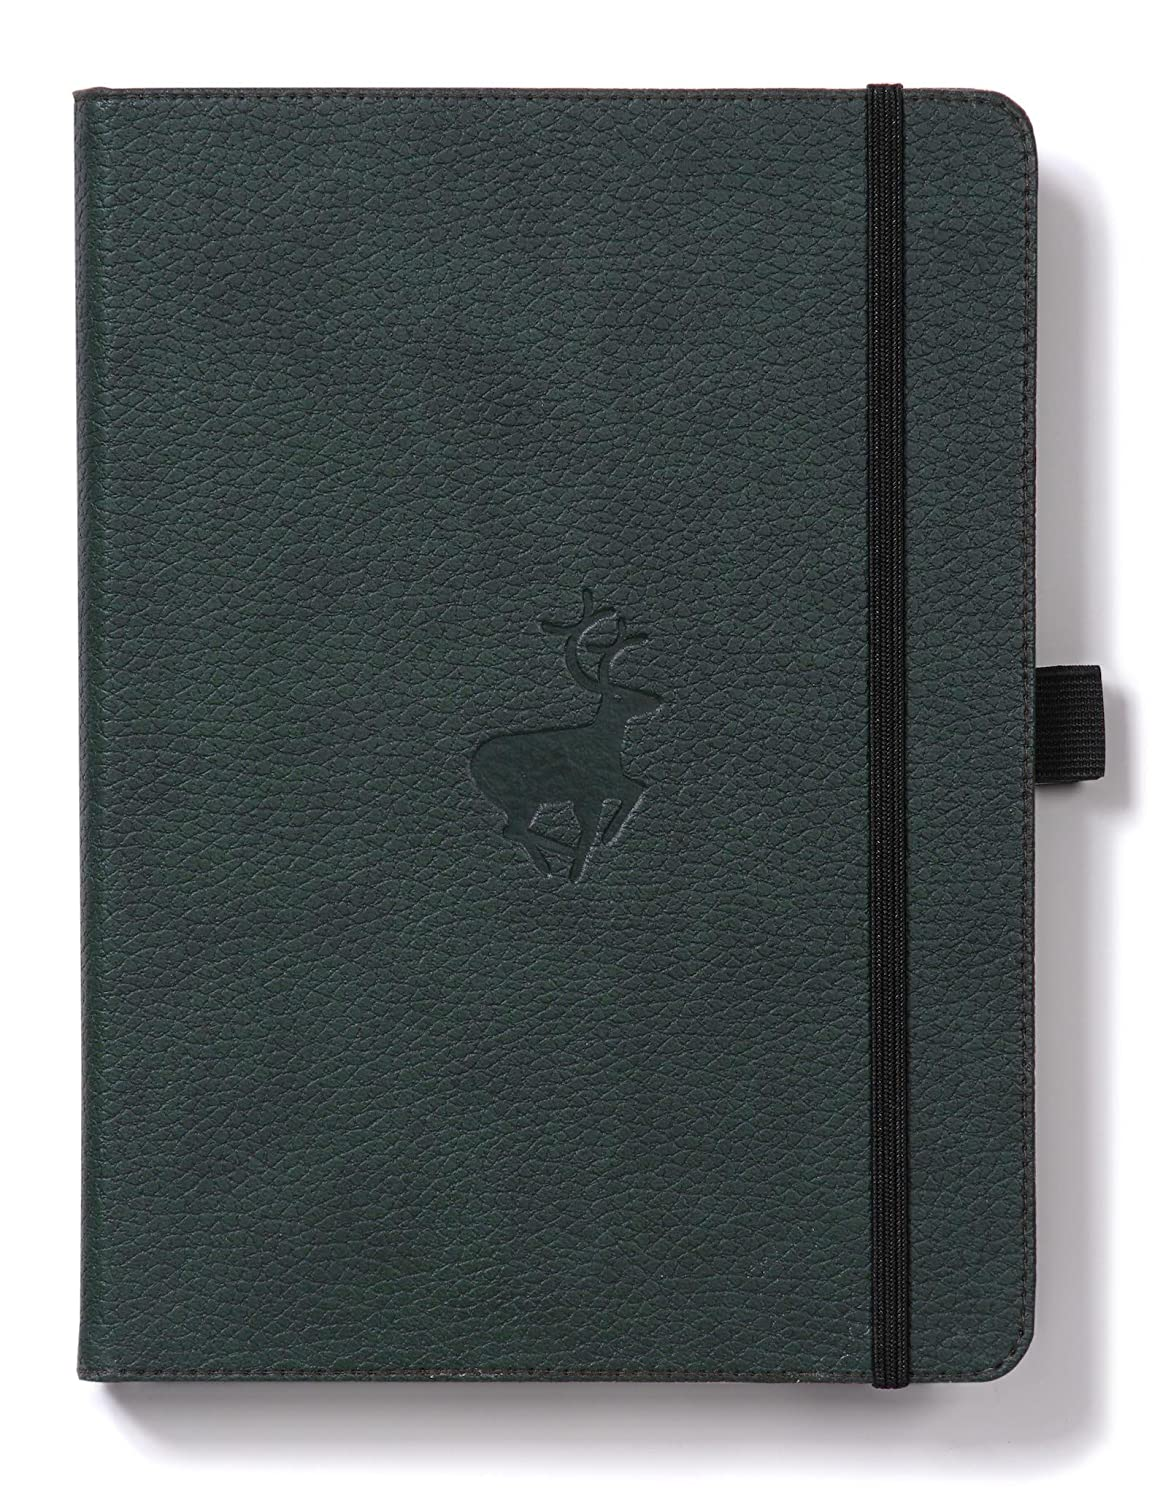 Best notebooks for fountain pens